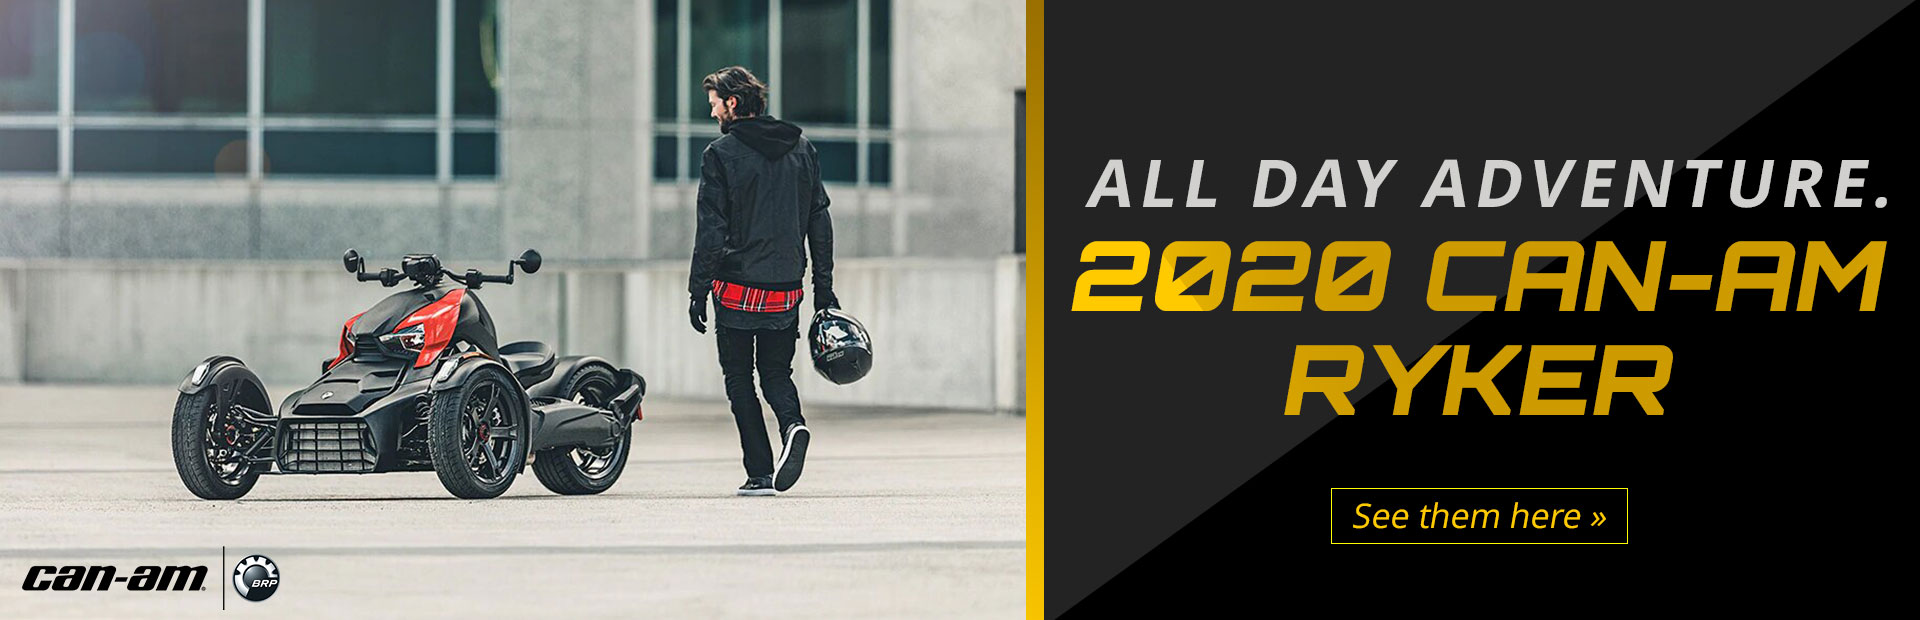 2020 Can-Am Ryker: Click here to view the models.